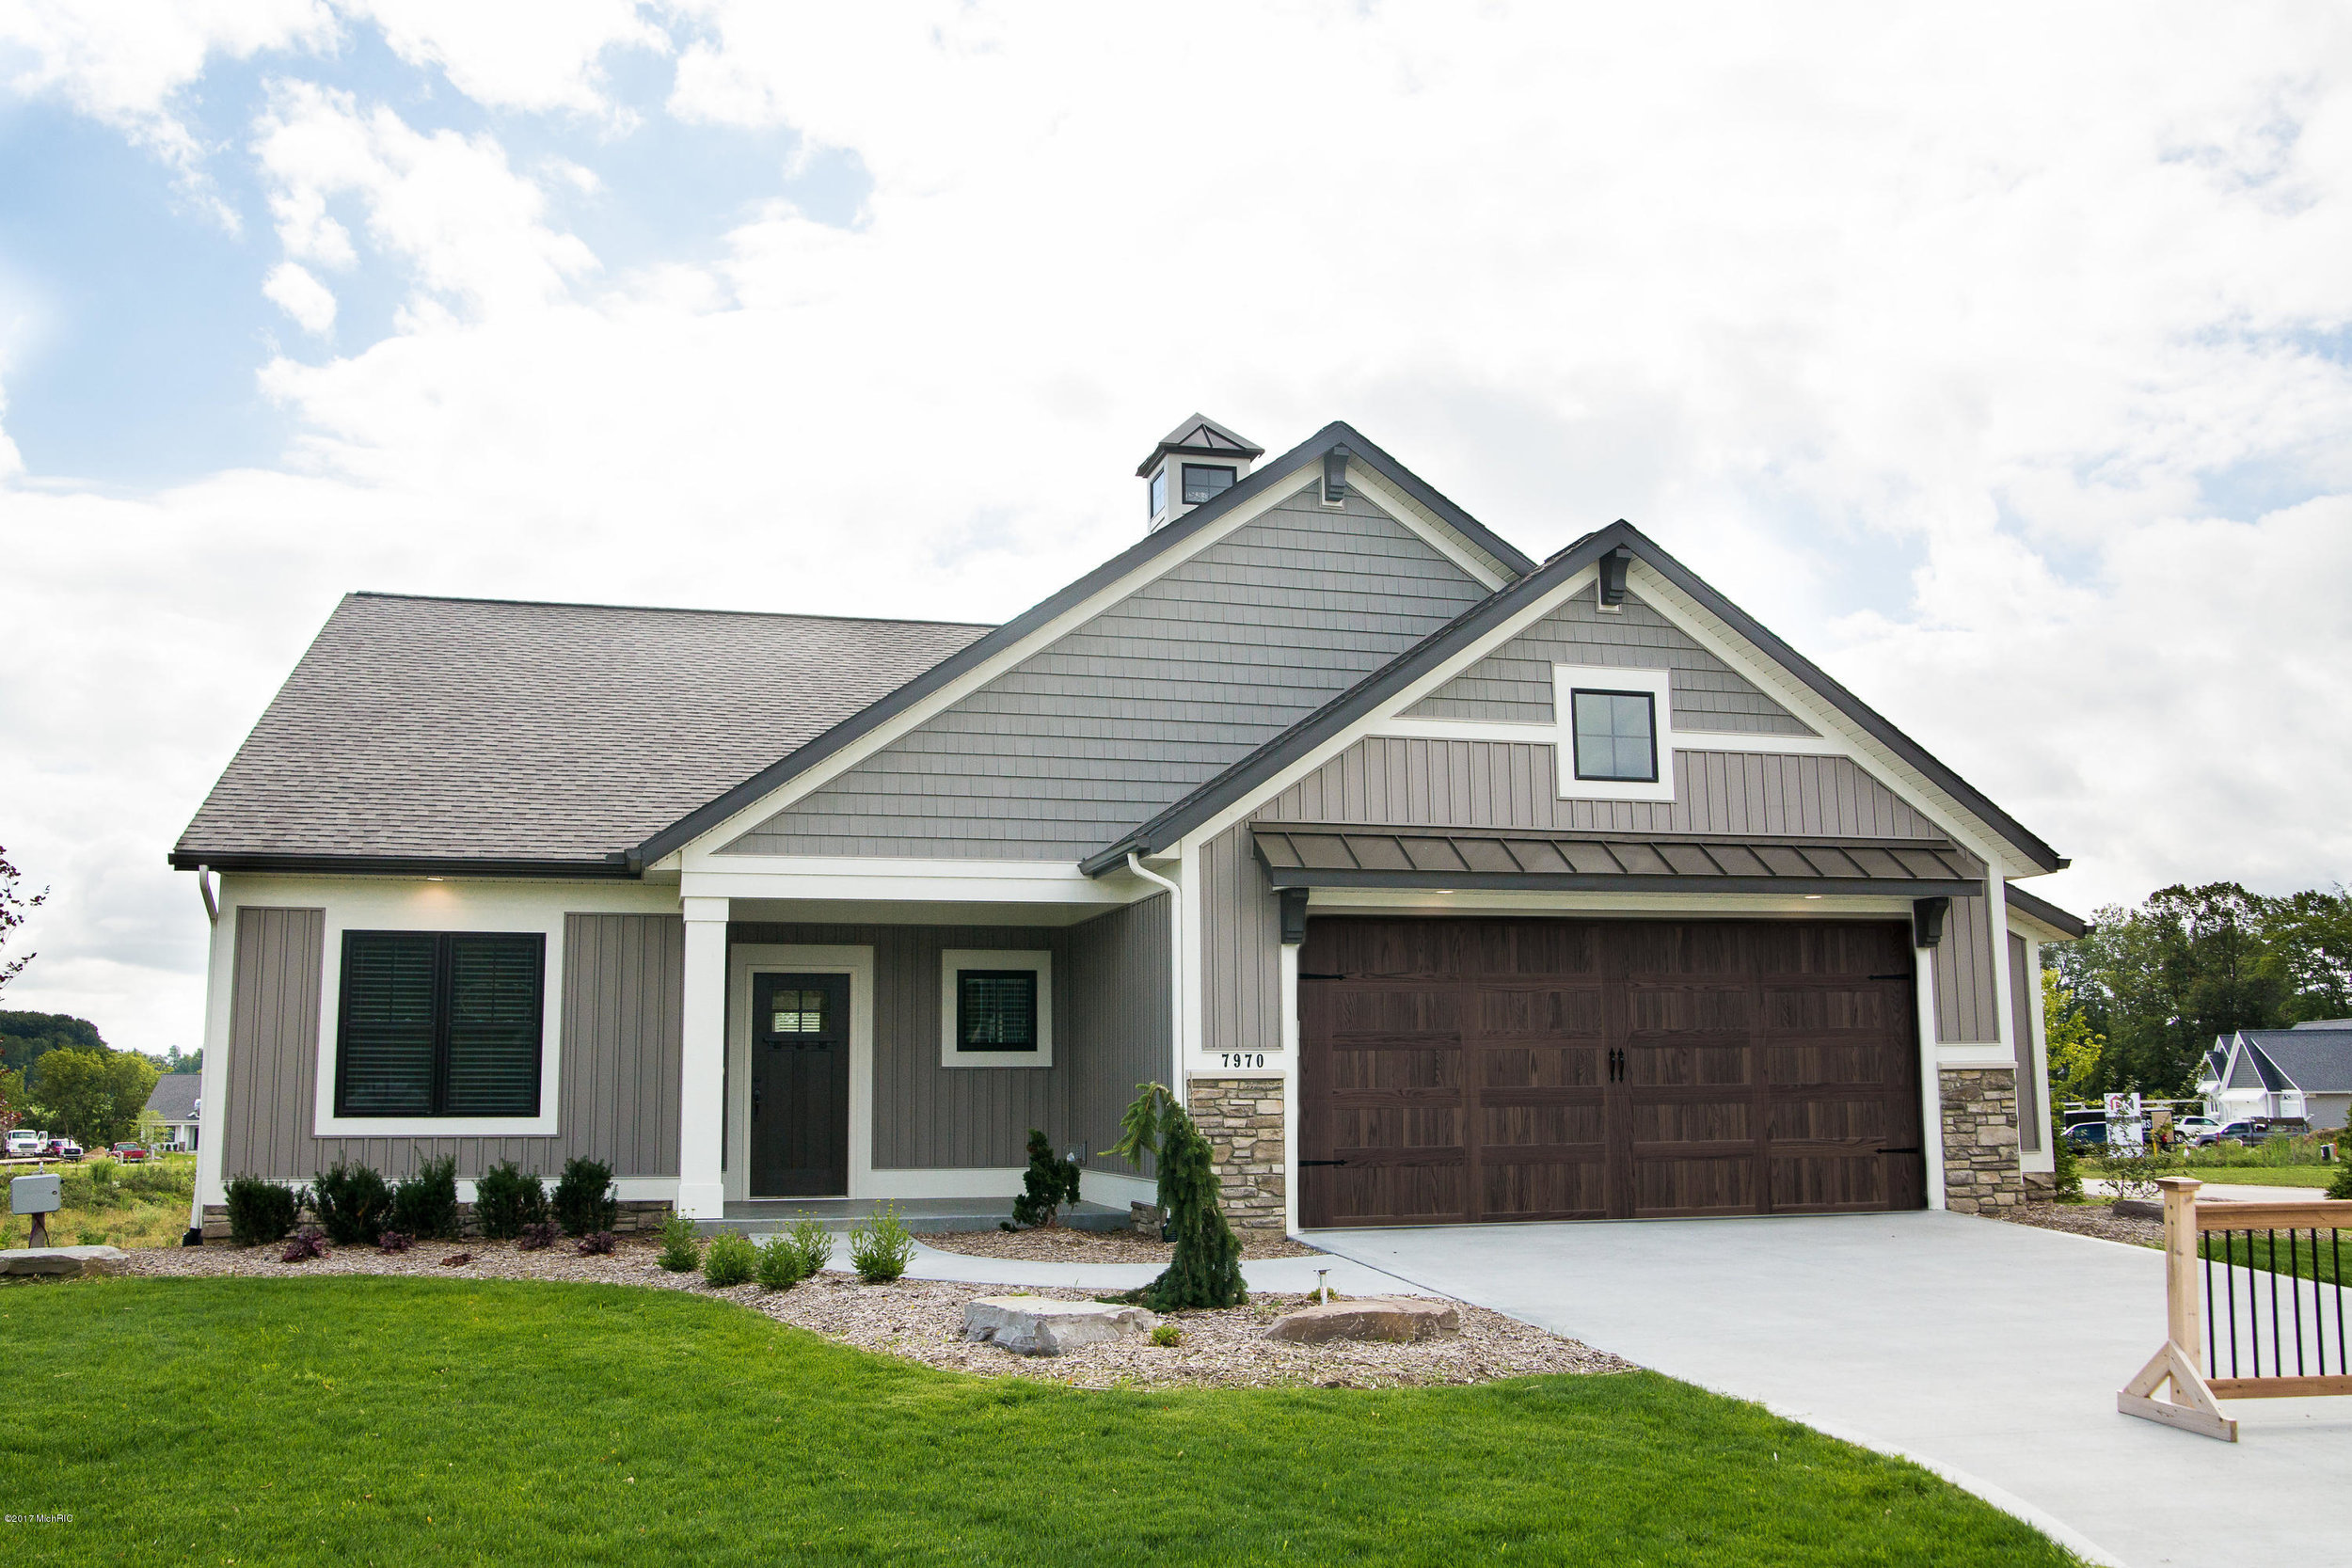 - New Houses, New Property, and Your Next Home In Byron Center, Michigan